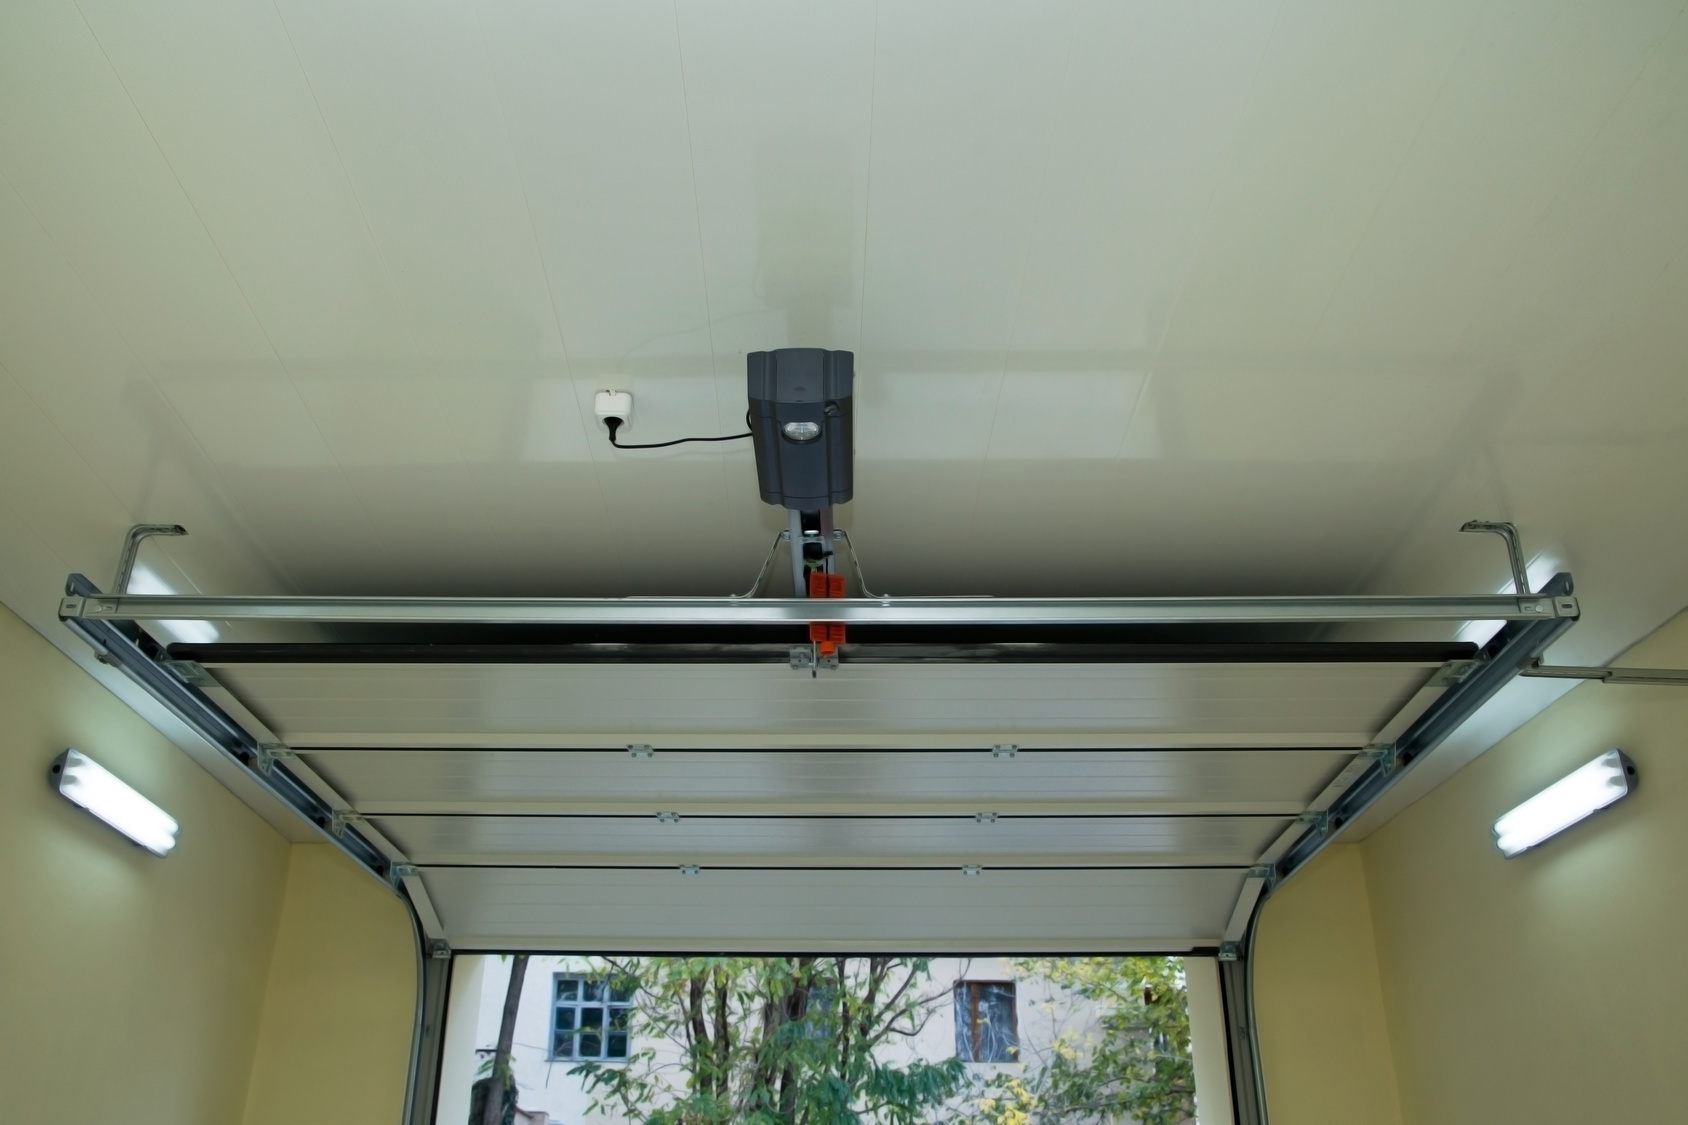 Overhead Door overhead door of washington dc photos : Overhead Garage Door Washington Dc - Home Desain 2018